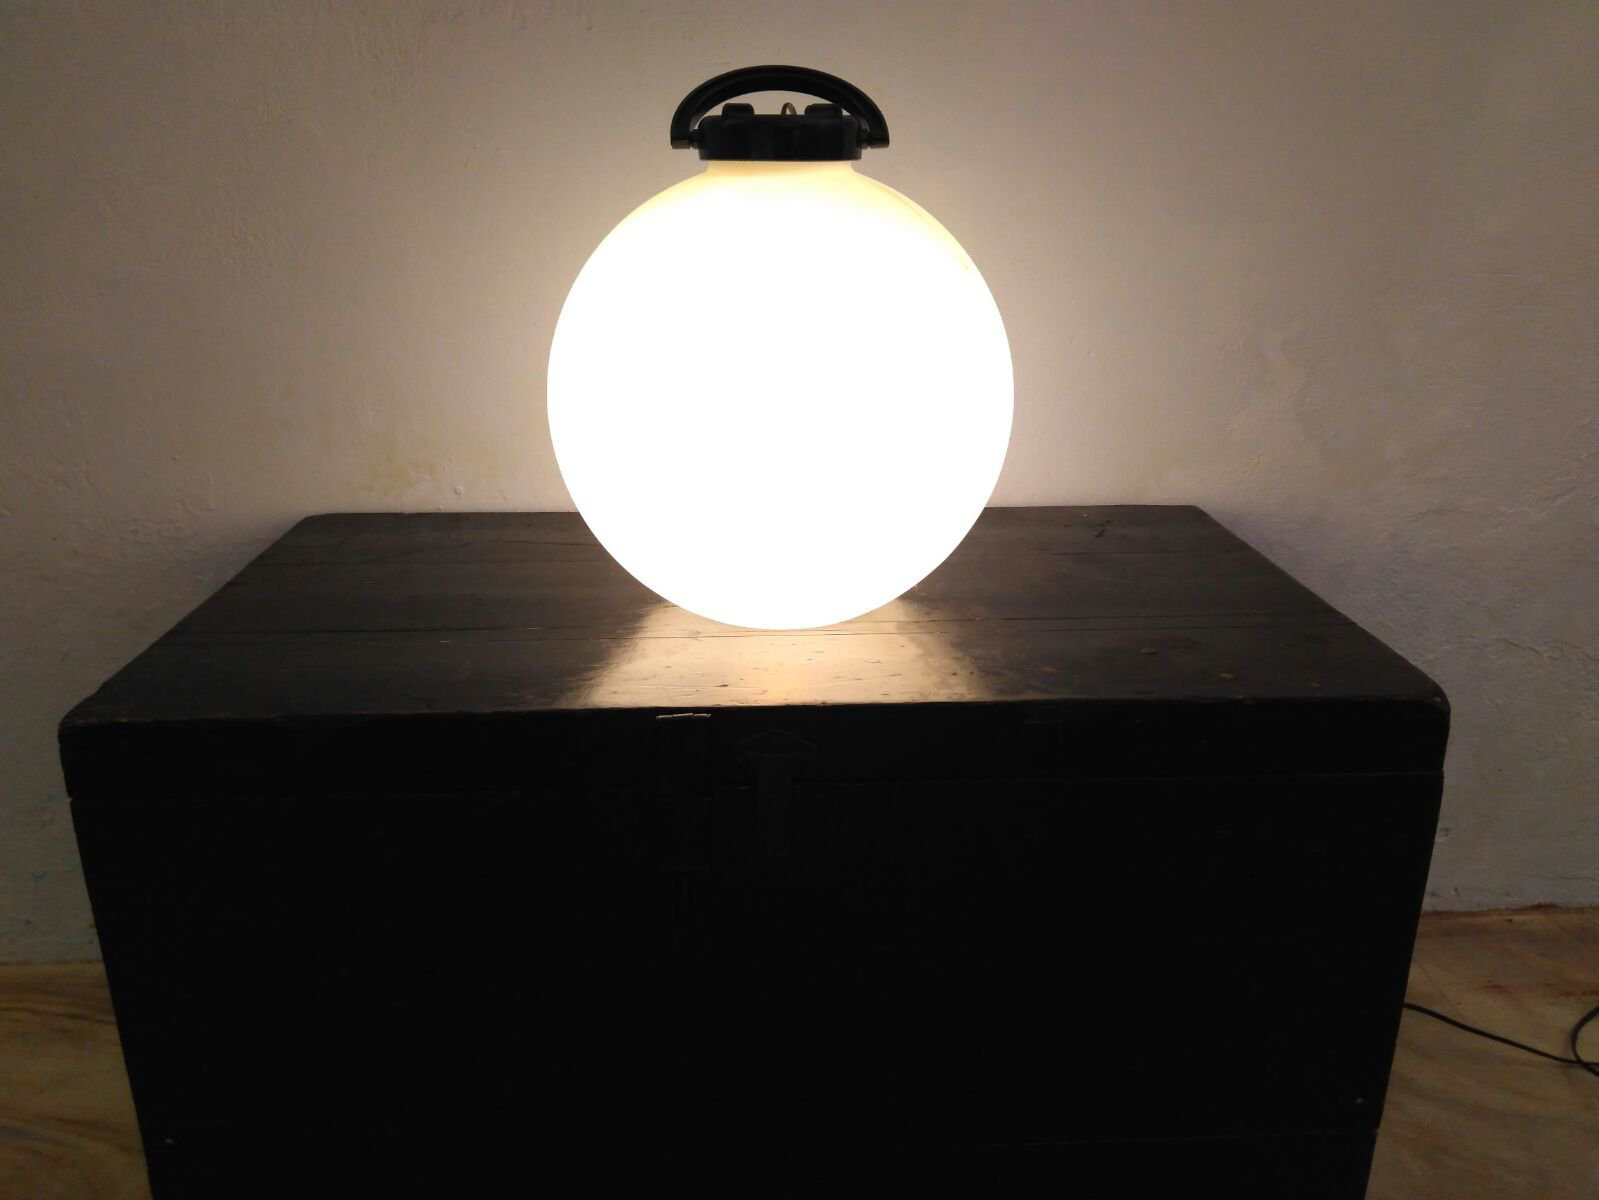 Picture of: El Vinta Tama Black White Floor Lamp By Isao Hosoe For Valenti 1975 Decoration Lamps